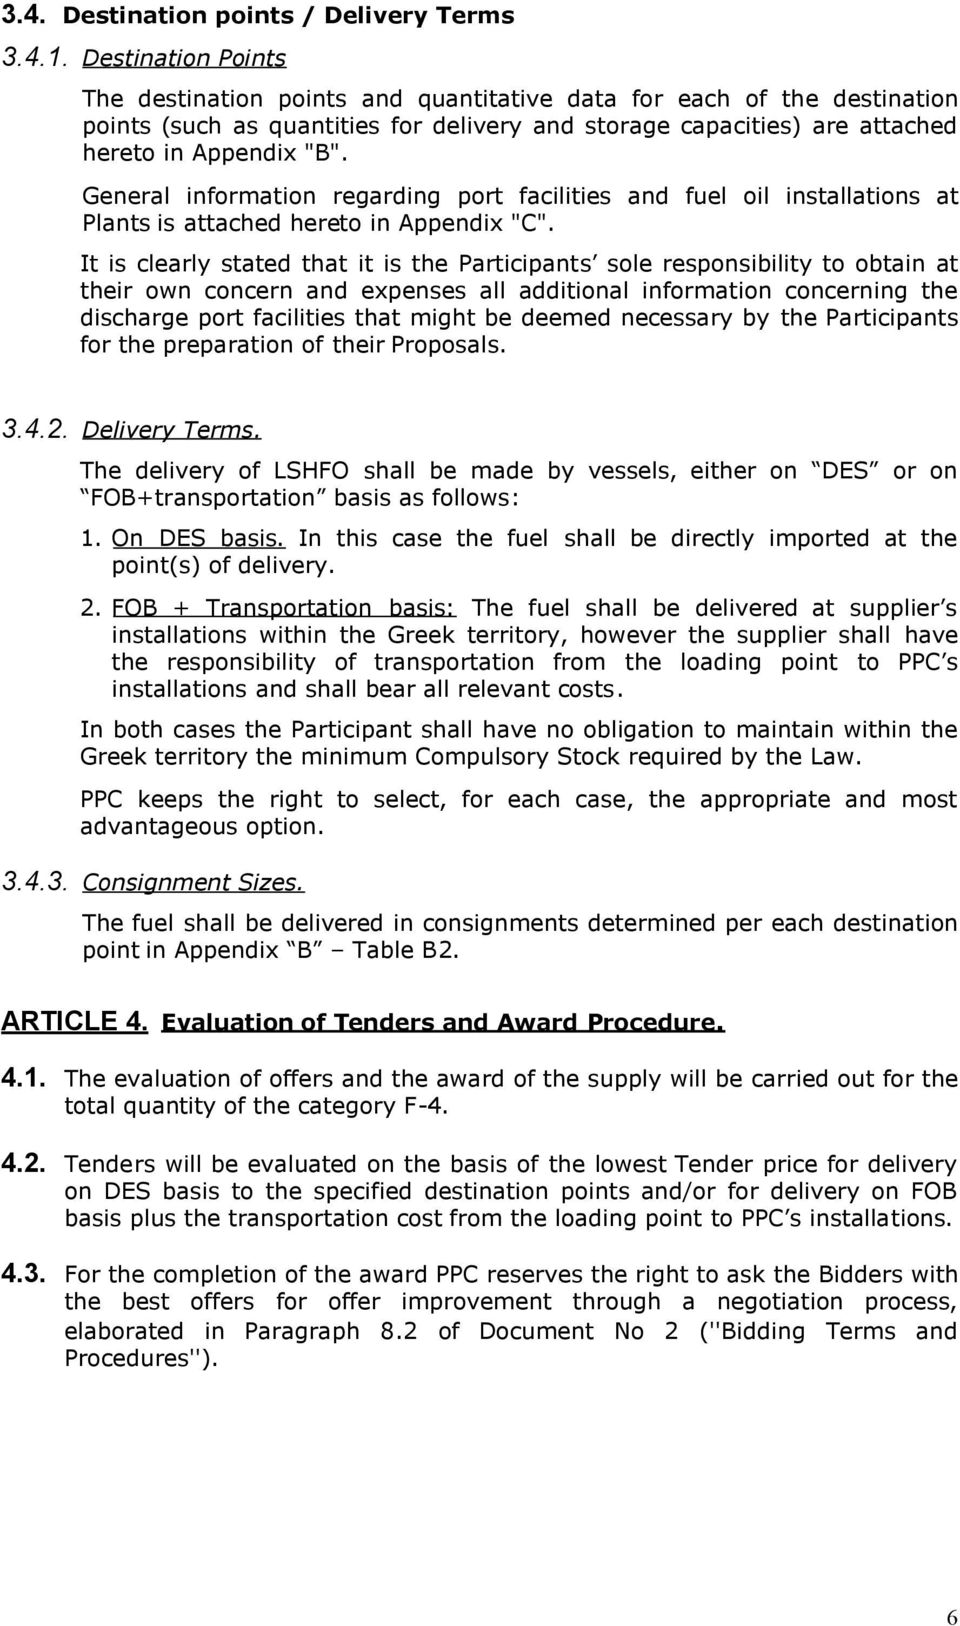 "General information regarding port facilities and fuel oil installations at Plants is attached hereto in Appendix ""C""."